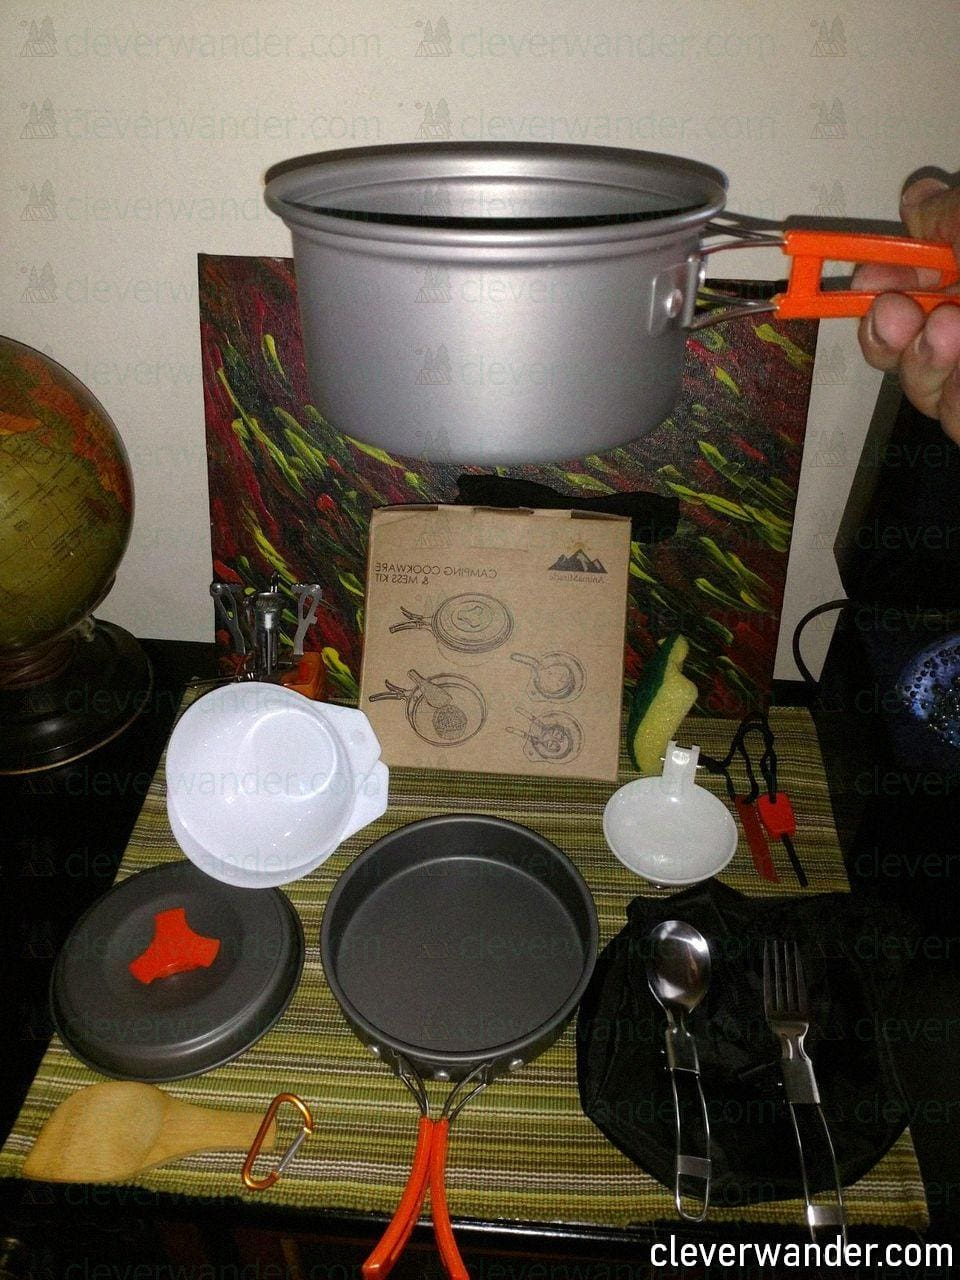 AnimeMiracle Pcs Camping Cookware Set - image review - 1